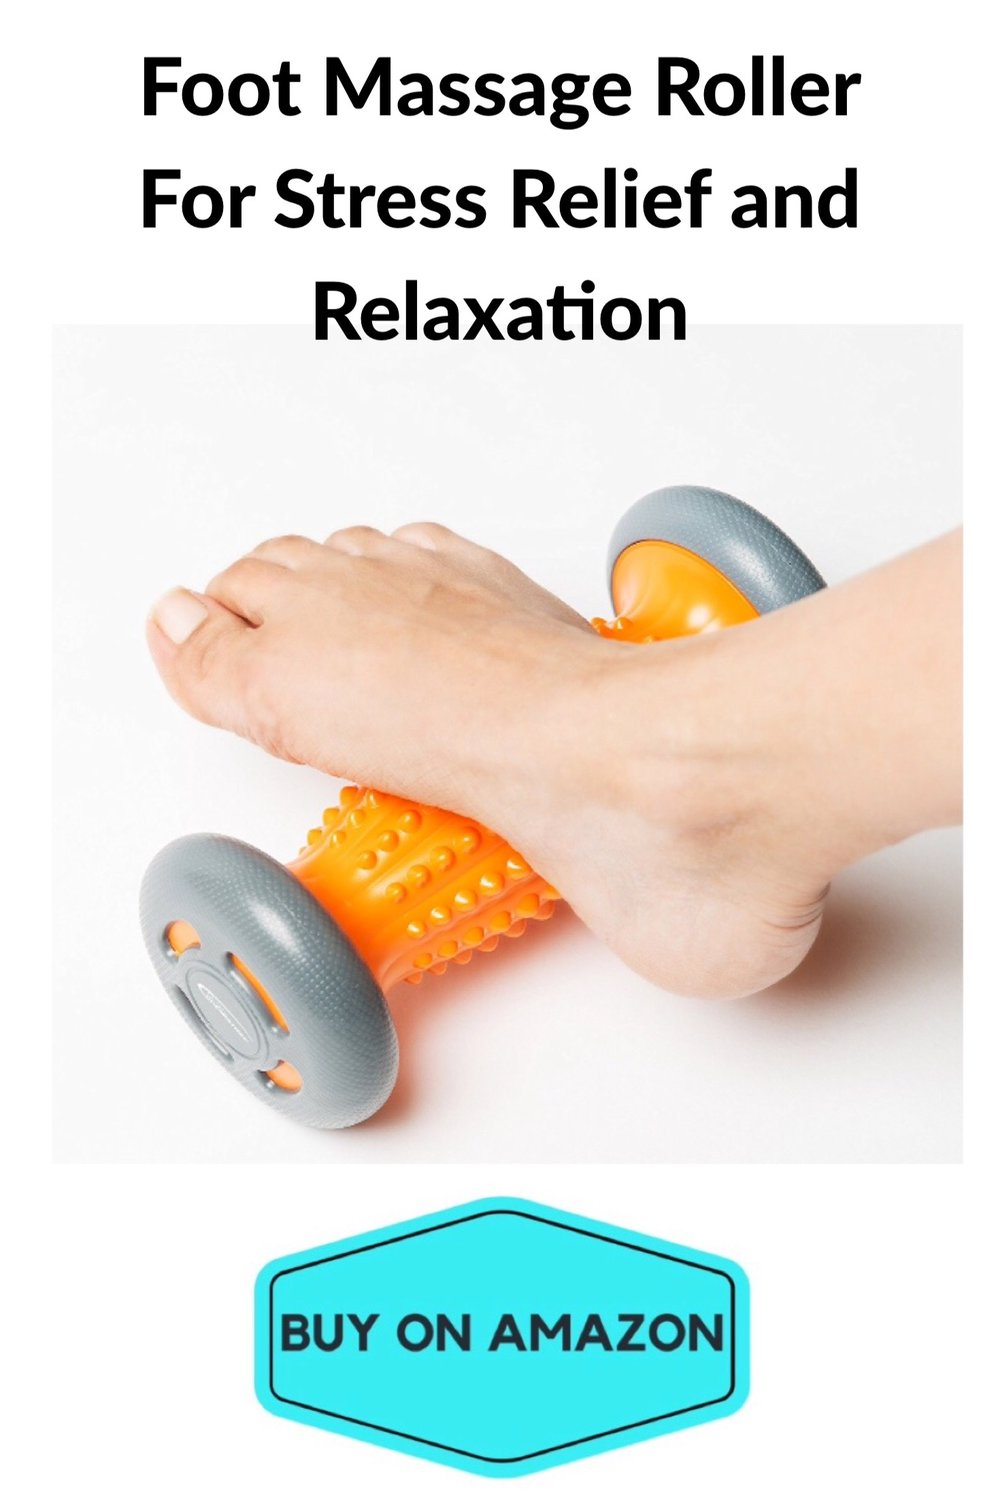 Foot Massager Roller For Stress Relief & Relaxation